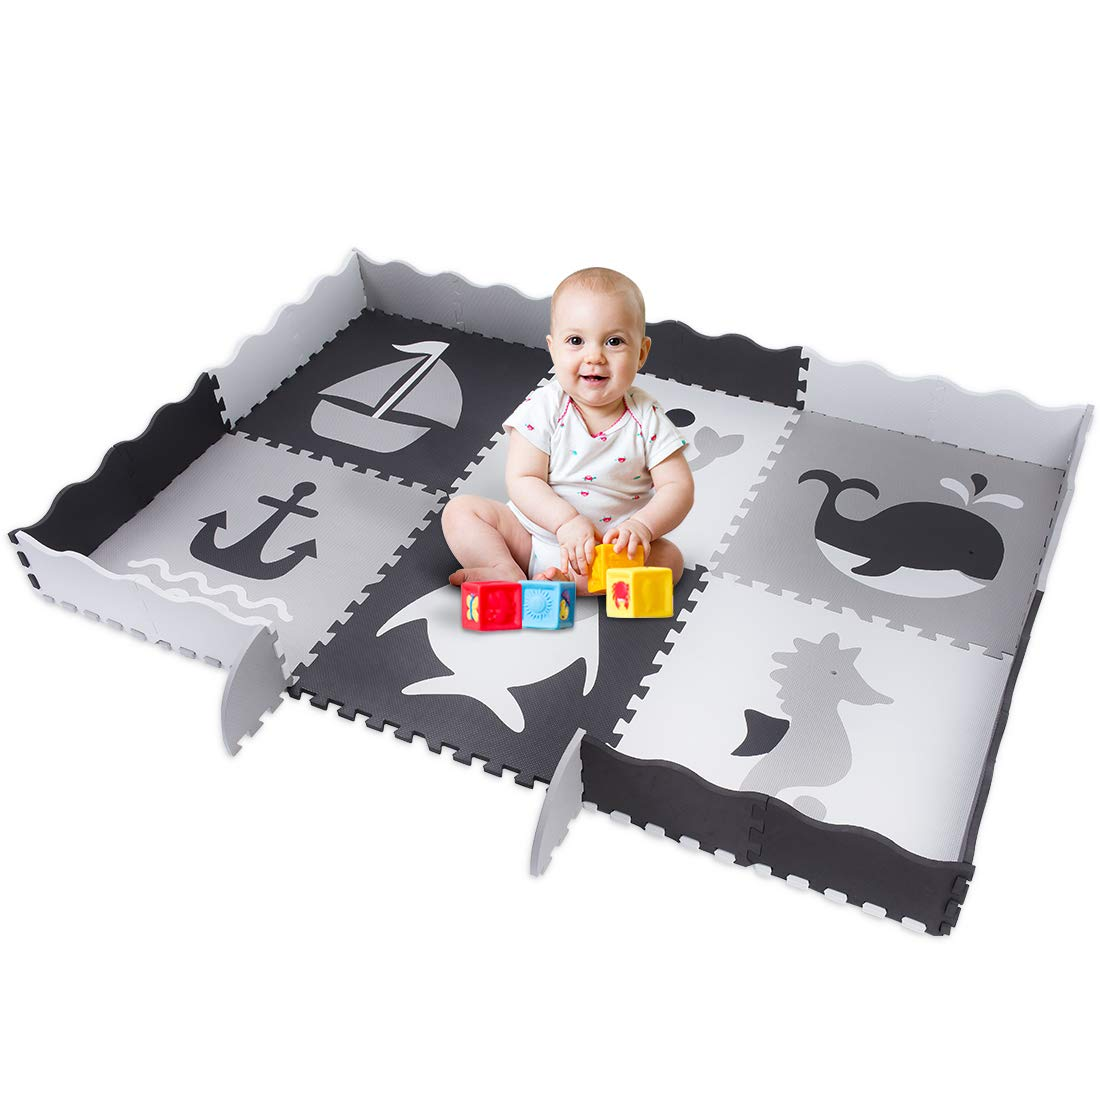 FORSTART Ocean-Themed 6.8FT 4.9FT Baby Play Mat 6 Pieces, 0.55 Thick ,Interlocking Soft Foam Floor Mat with Fence Including 6 Different Patterns for Kids, Toddlers, Babies